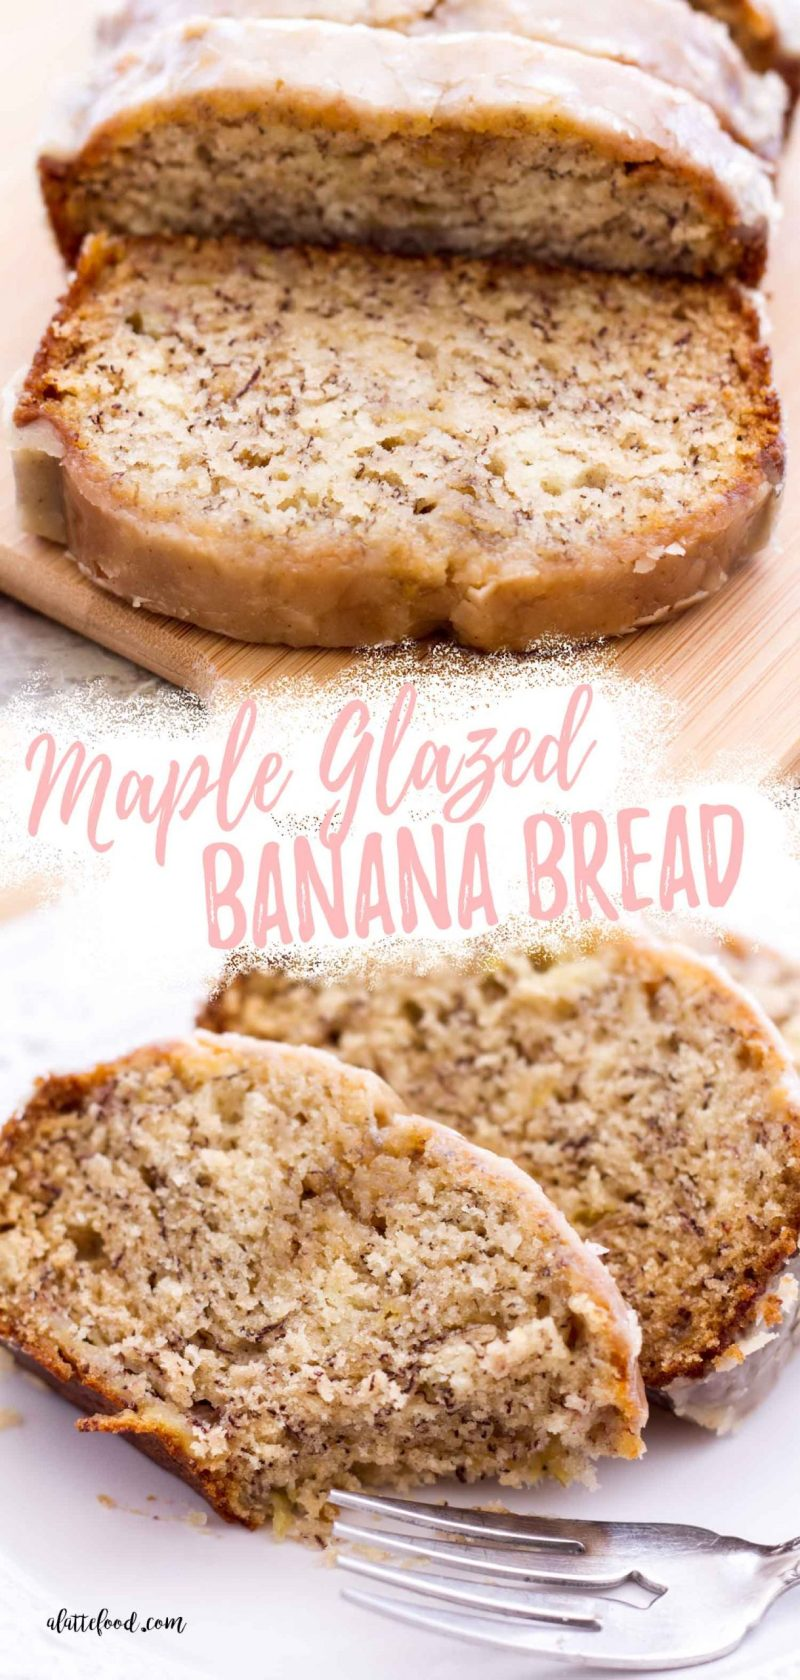 banana bread collage with text